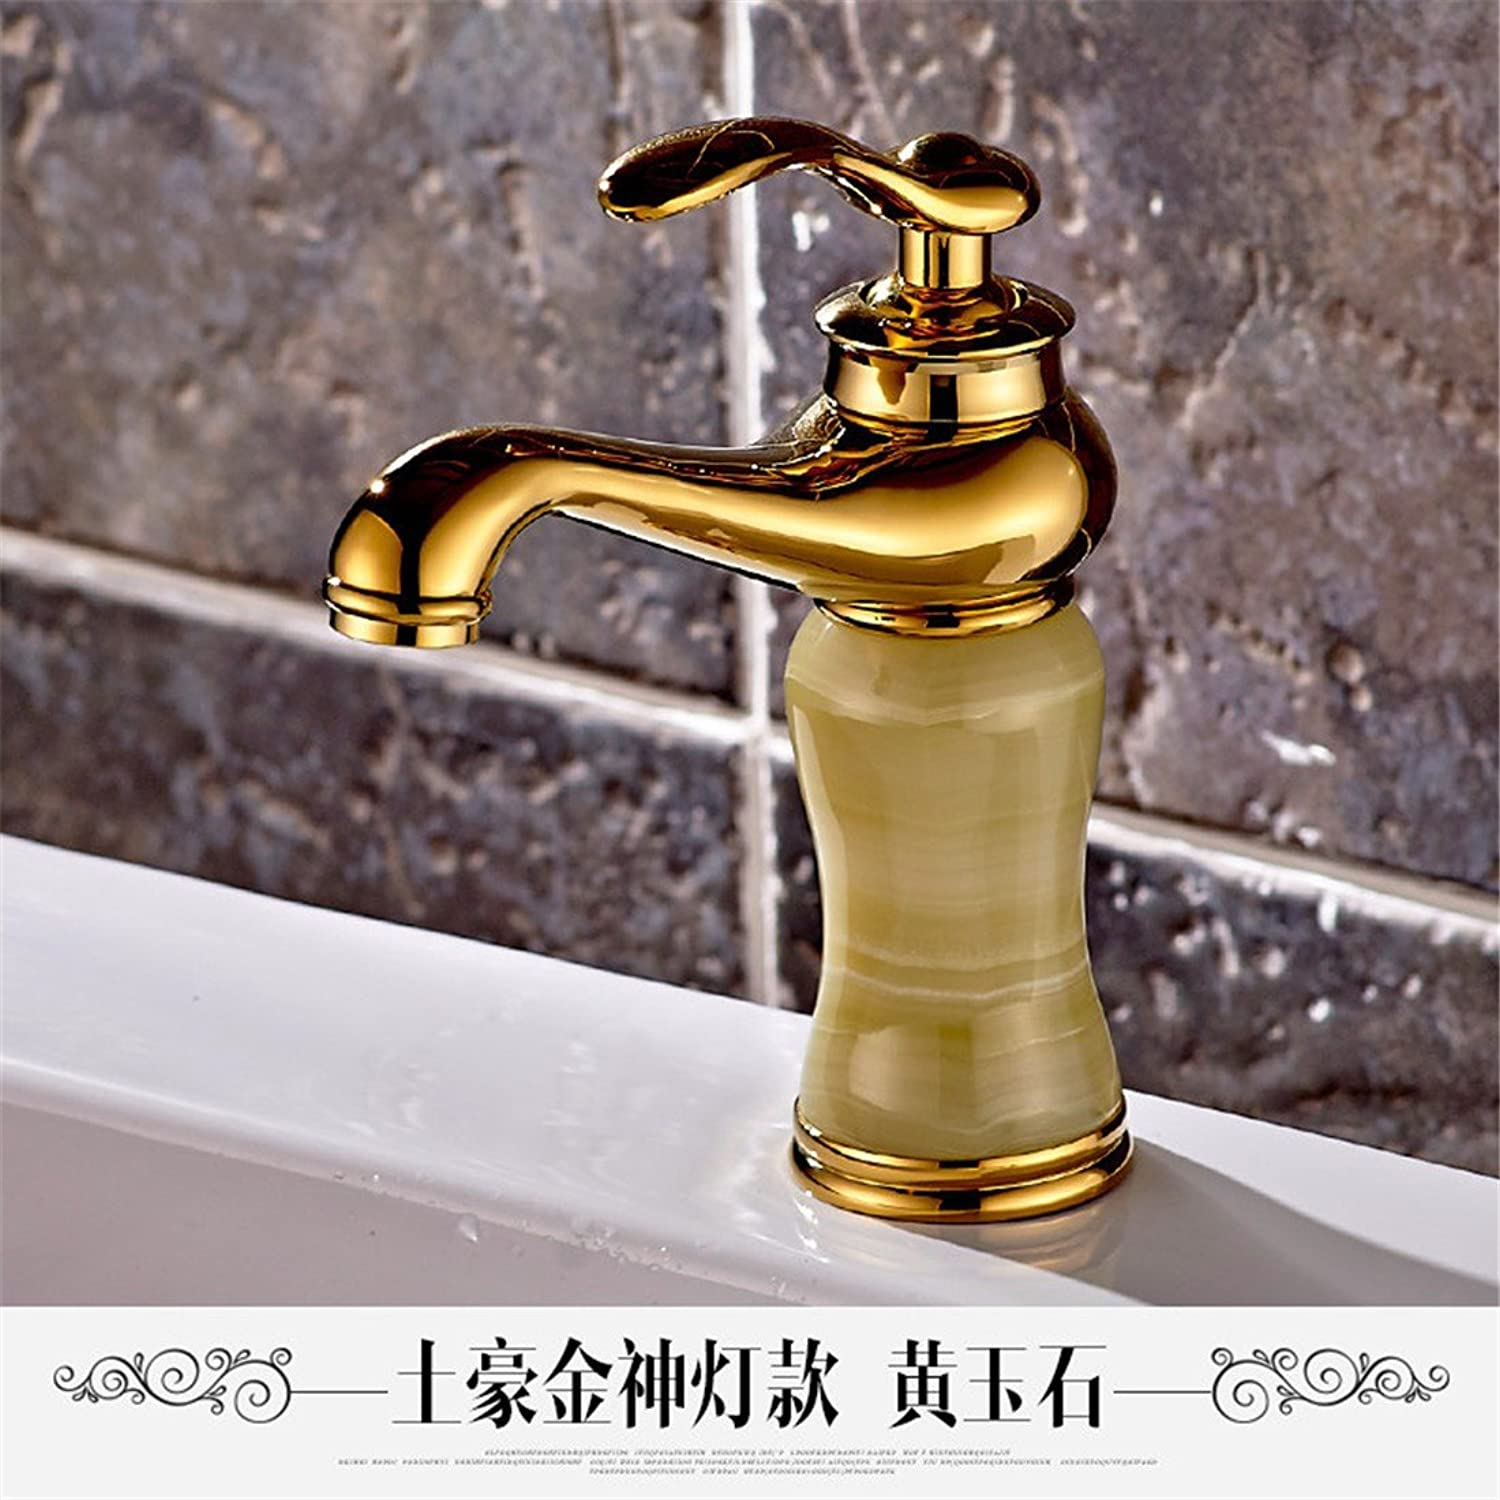 Hlluya Professional Sink Mixer Tap Kitchen Faucet The Jade faucet marble washbasins pink gold basin full copper golden basin of hot and cold taps, God light golden yellow corn